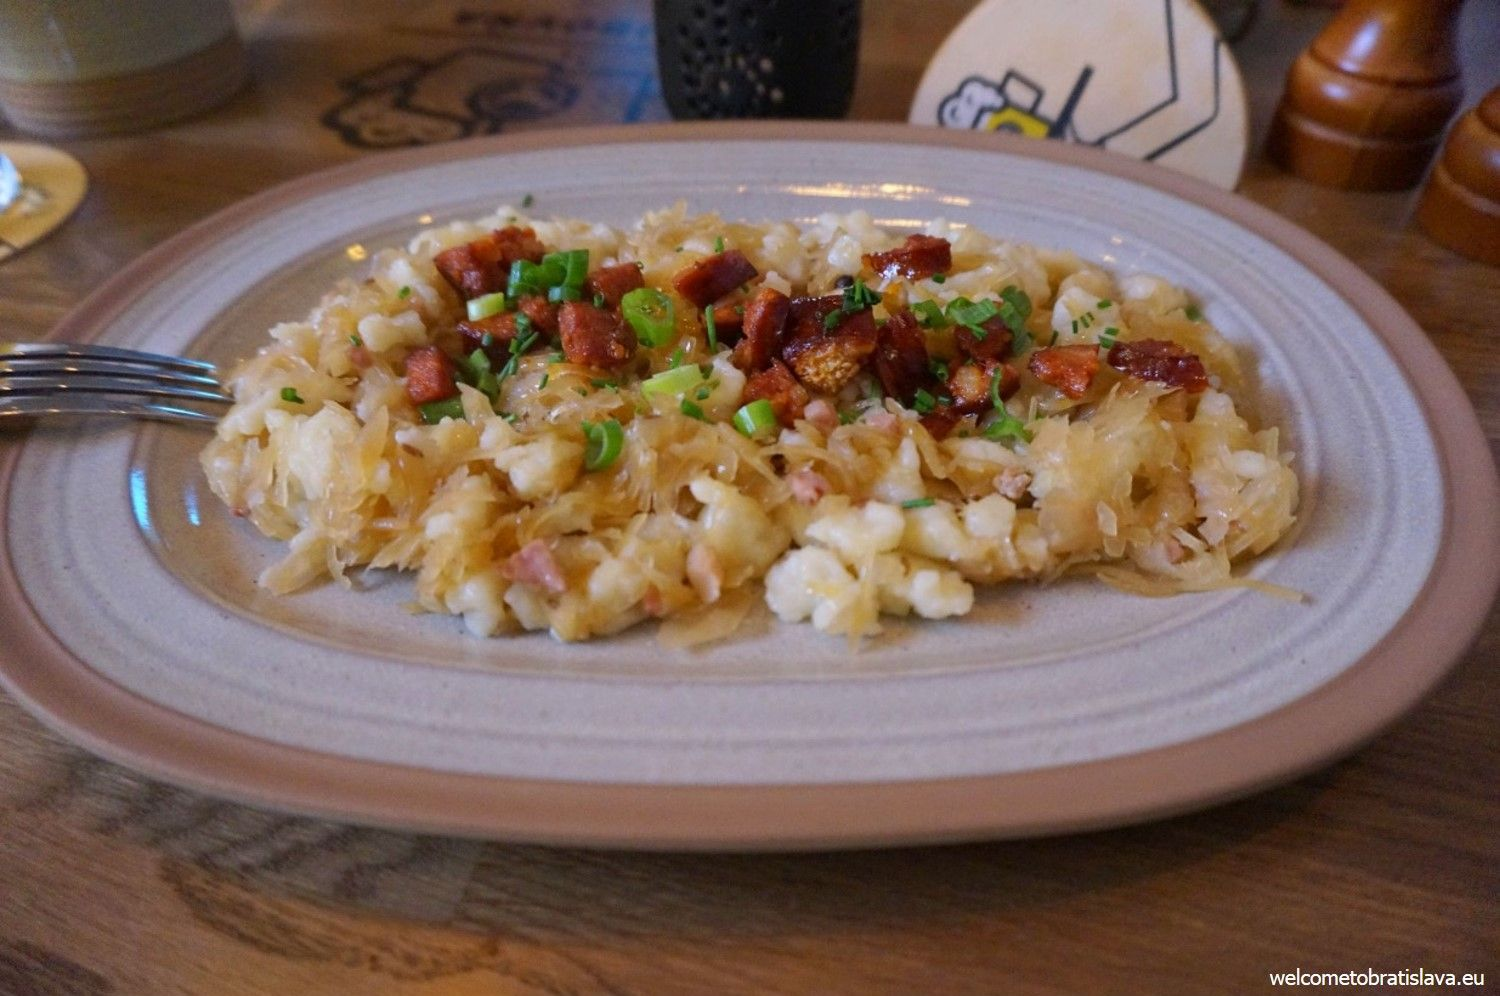 Kapustove halusky - gnocci with cabbage and bacon